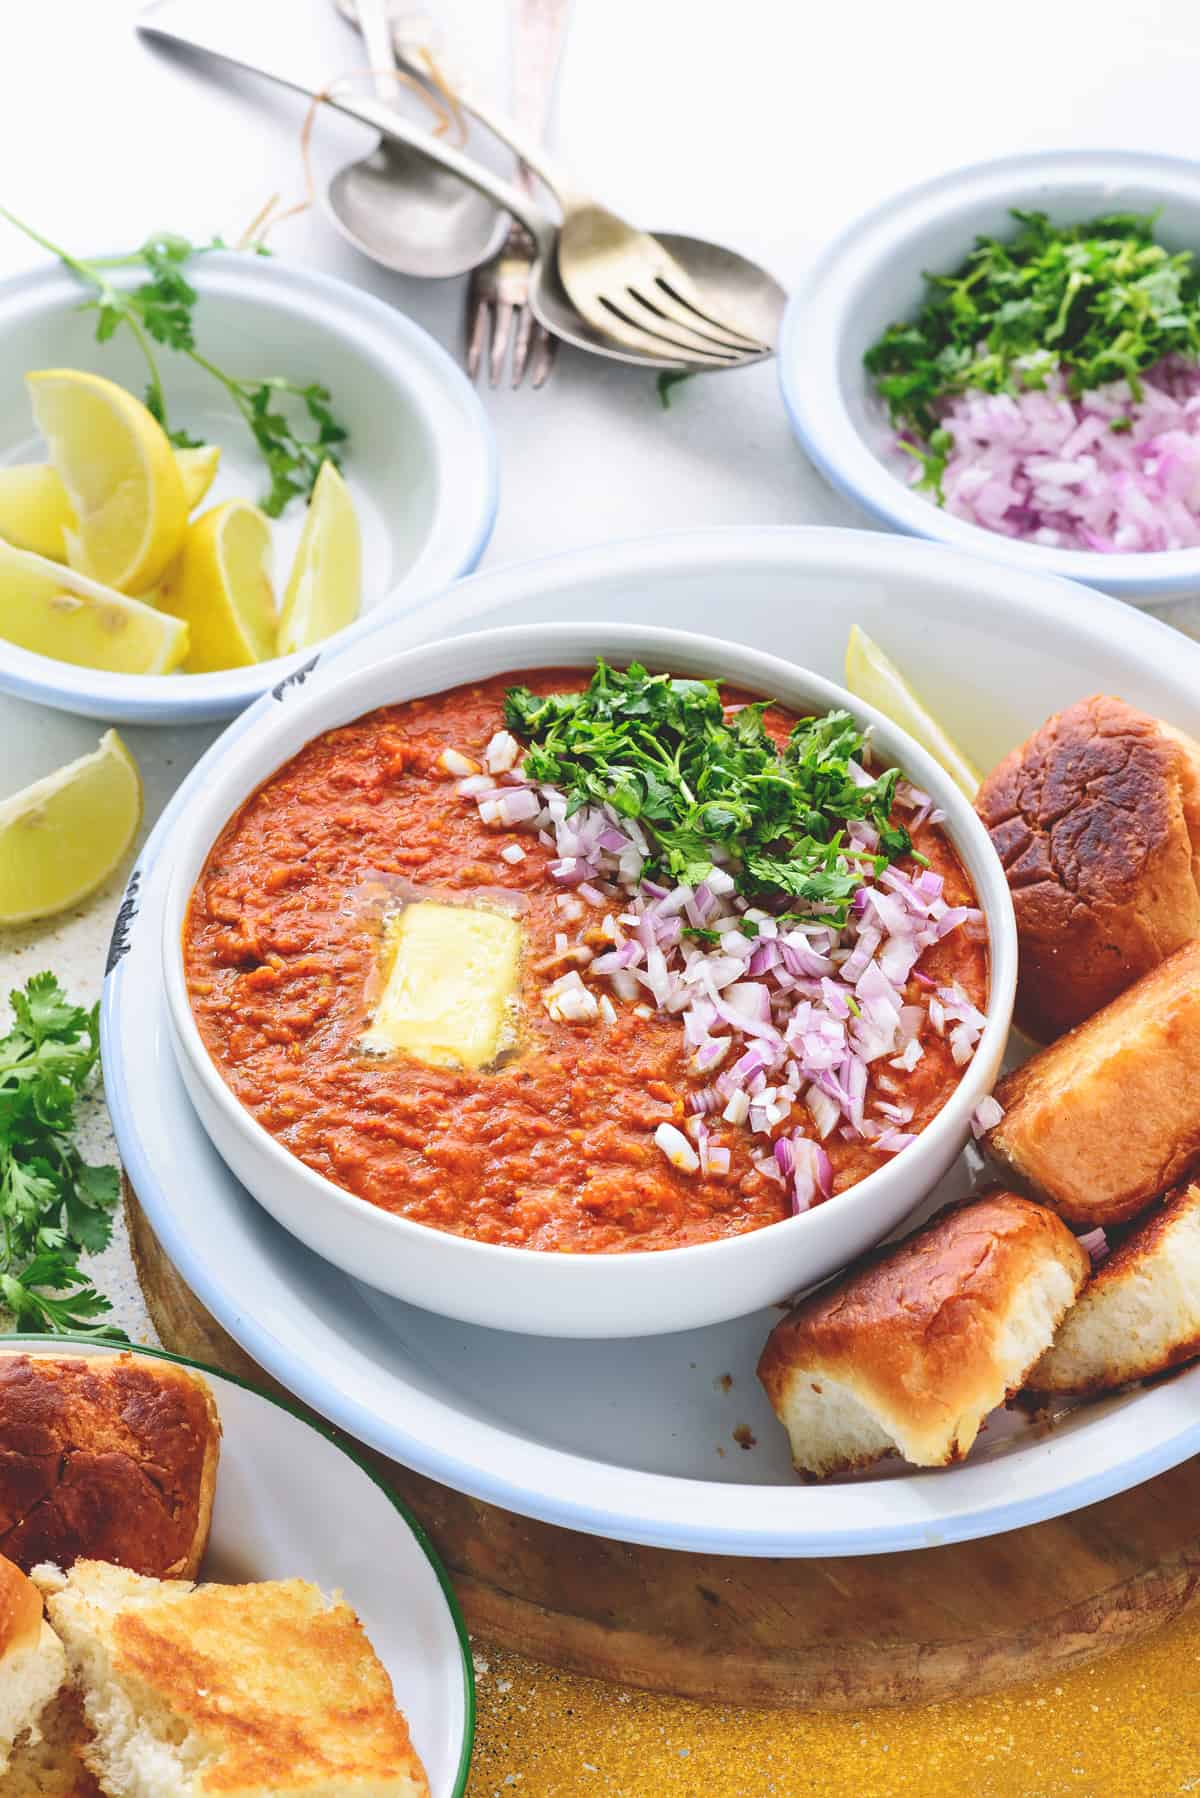 Garnished Pav Bhaaji served in white bowl with buttered buns, chopped onions and lemon wedges.